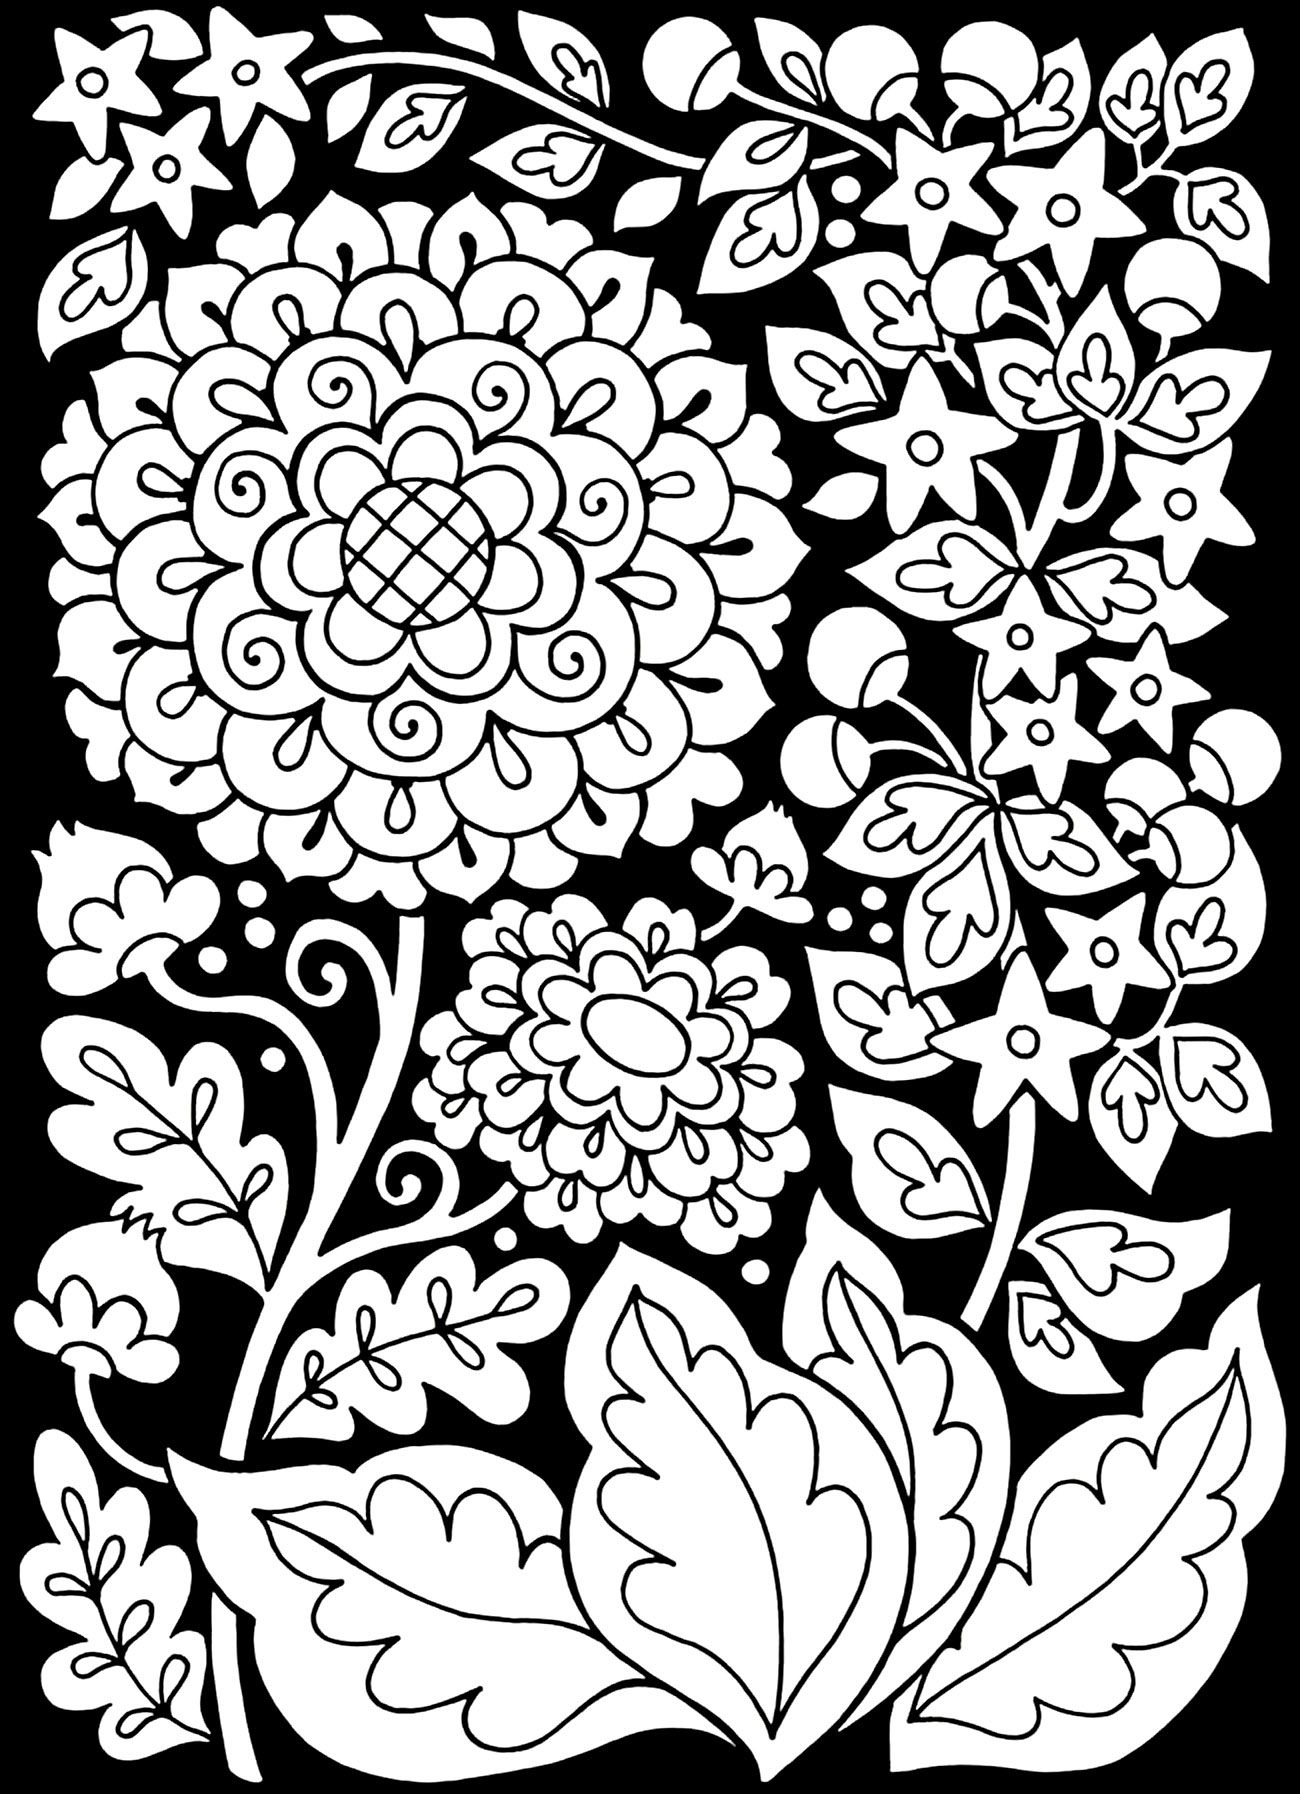 Coloring pages trees and flowers - Free Coloring Page Coloring Adult Flowers Black Background Flowers With Black